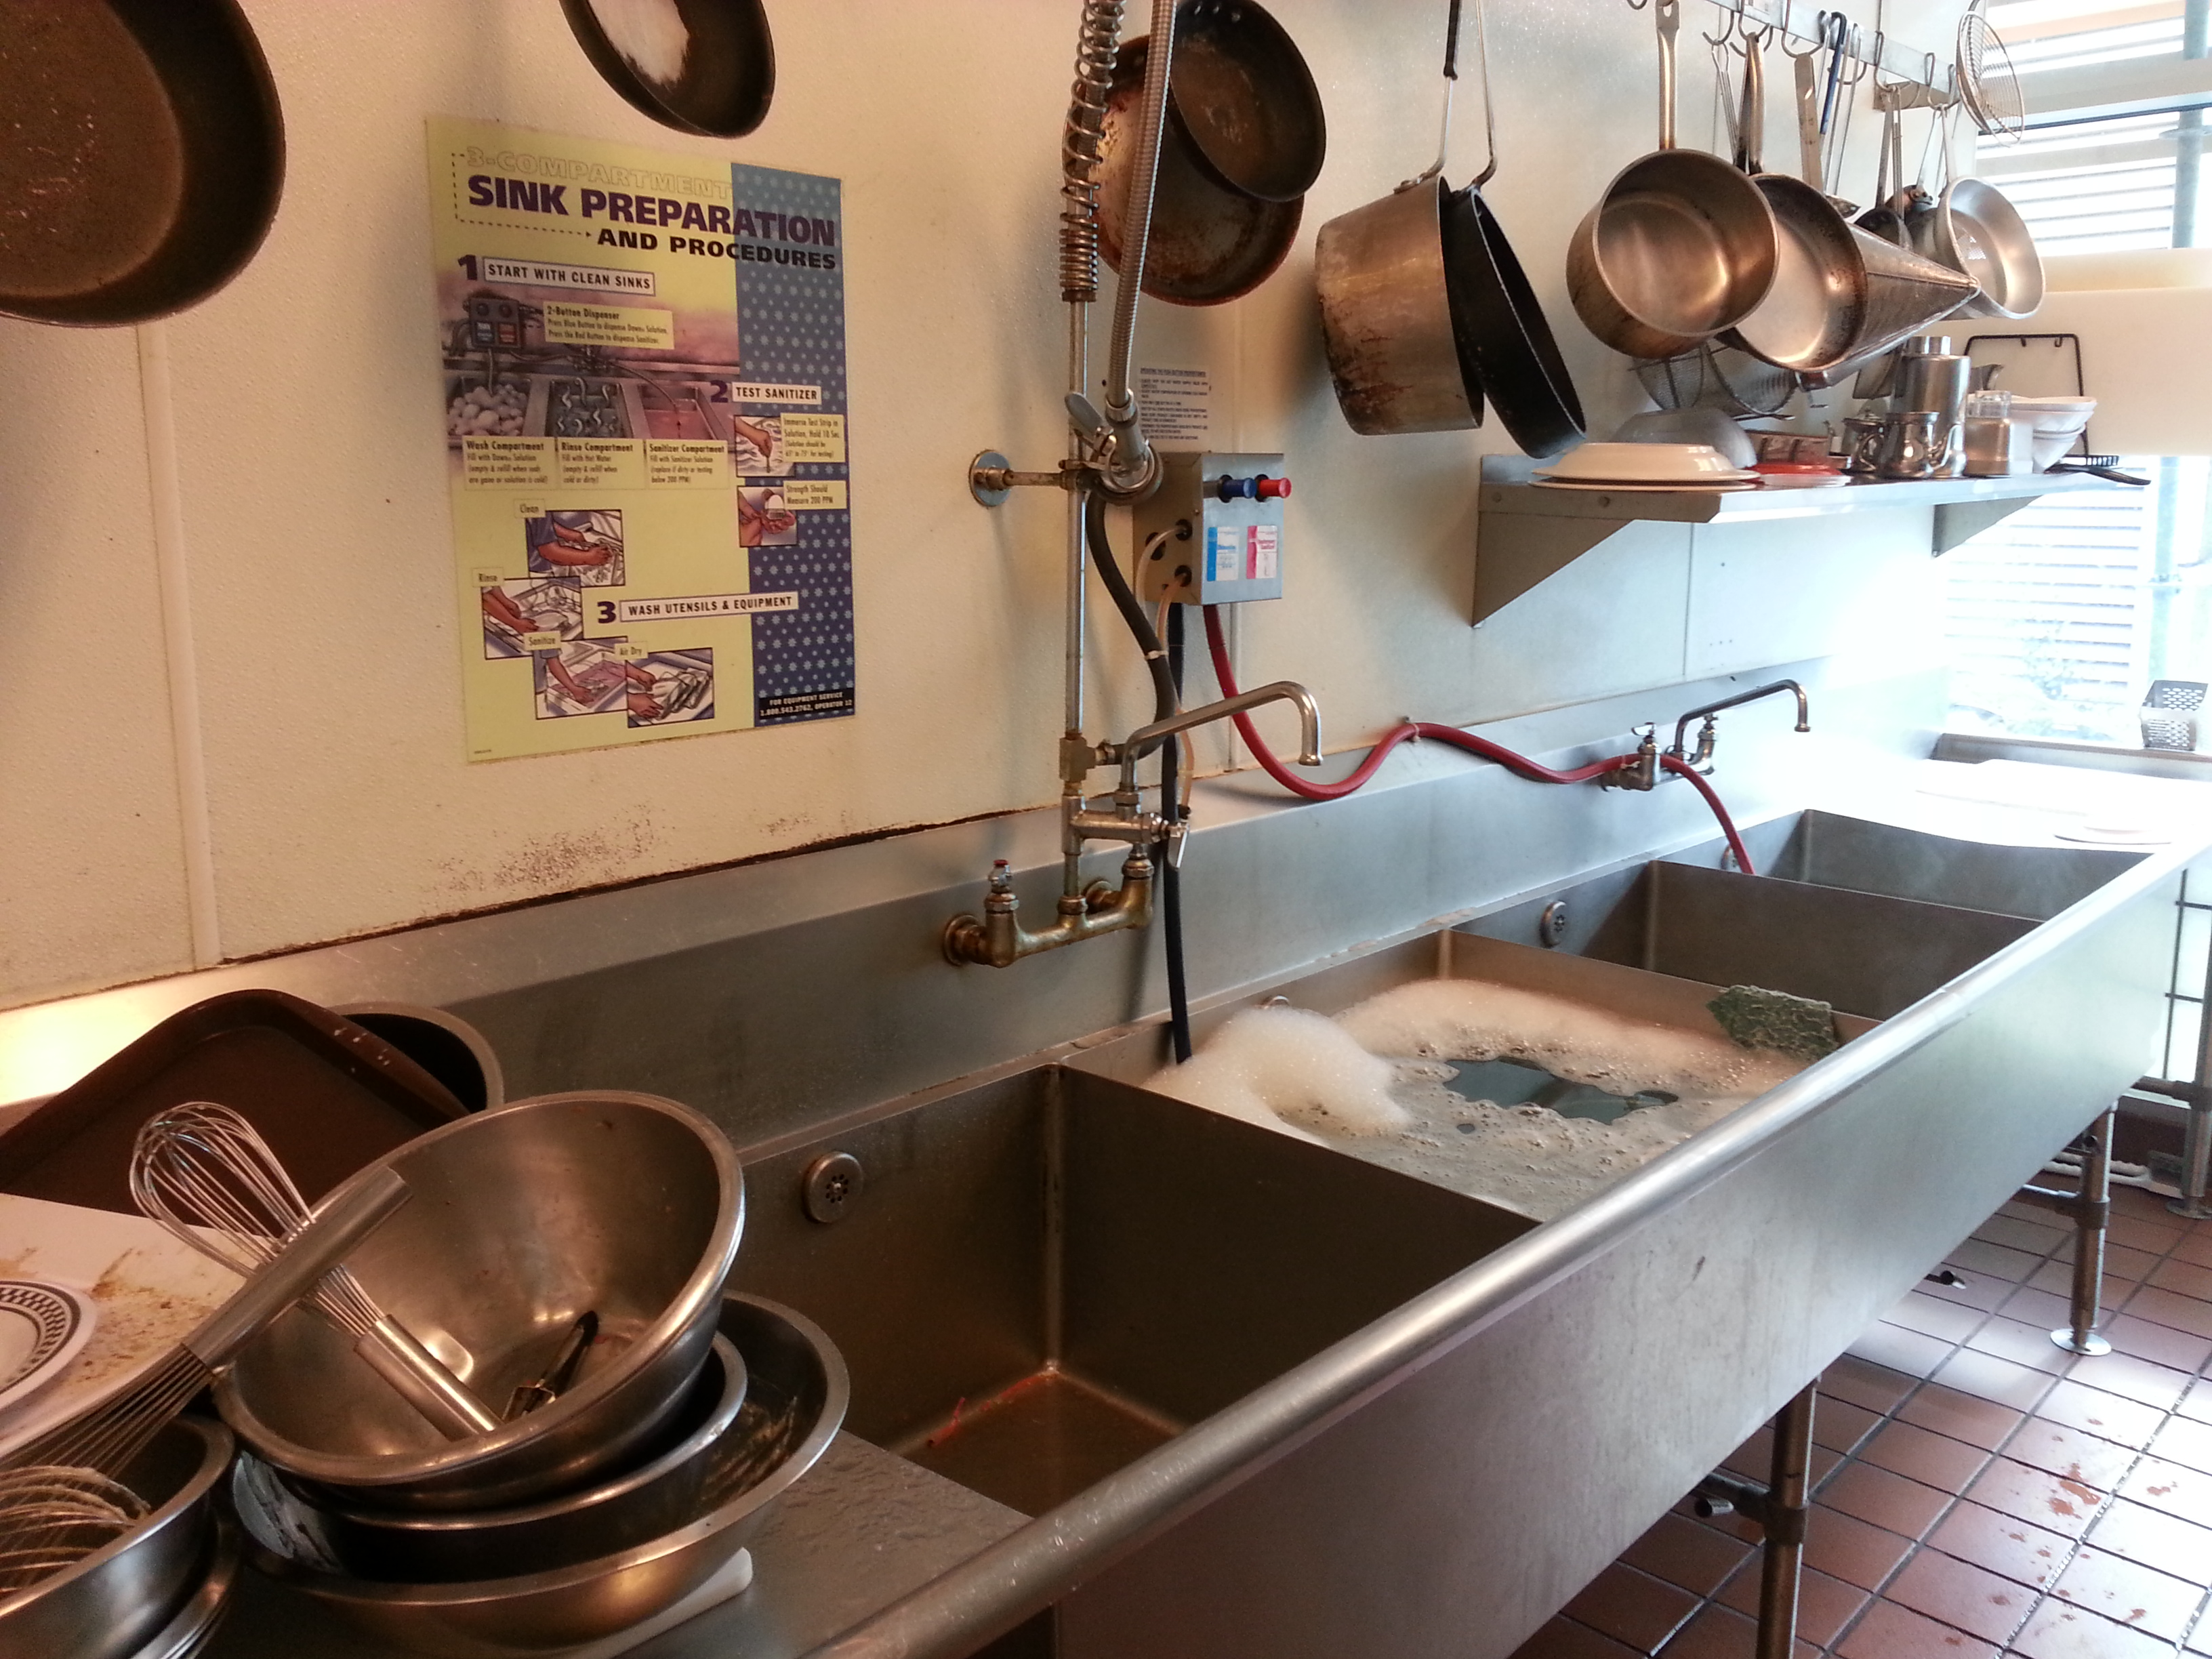 Washing Dishes As Antidote For Apathy